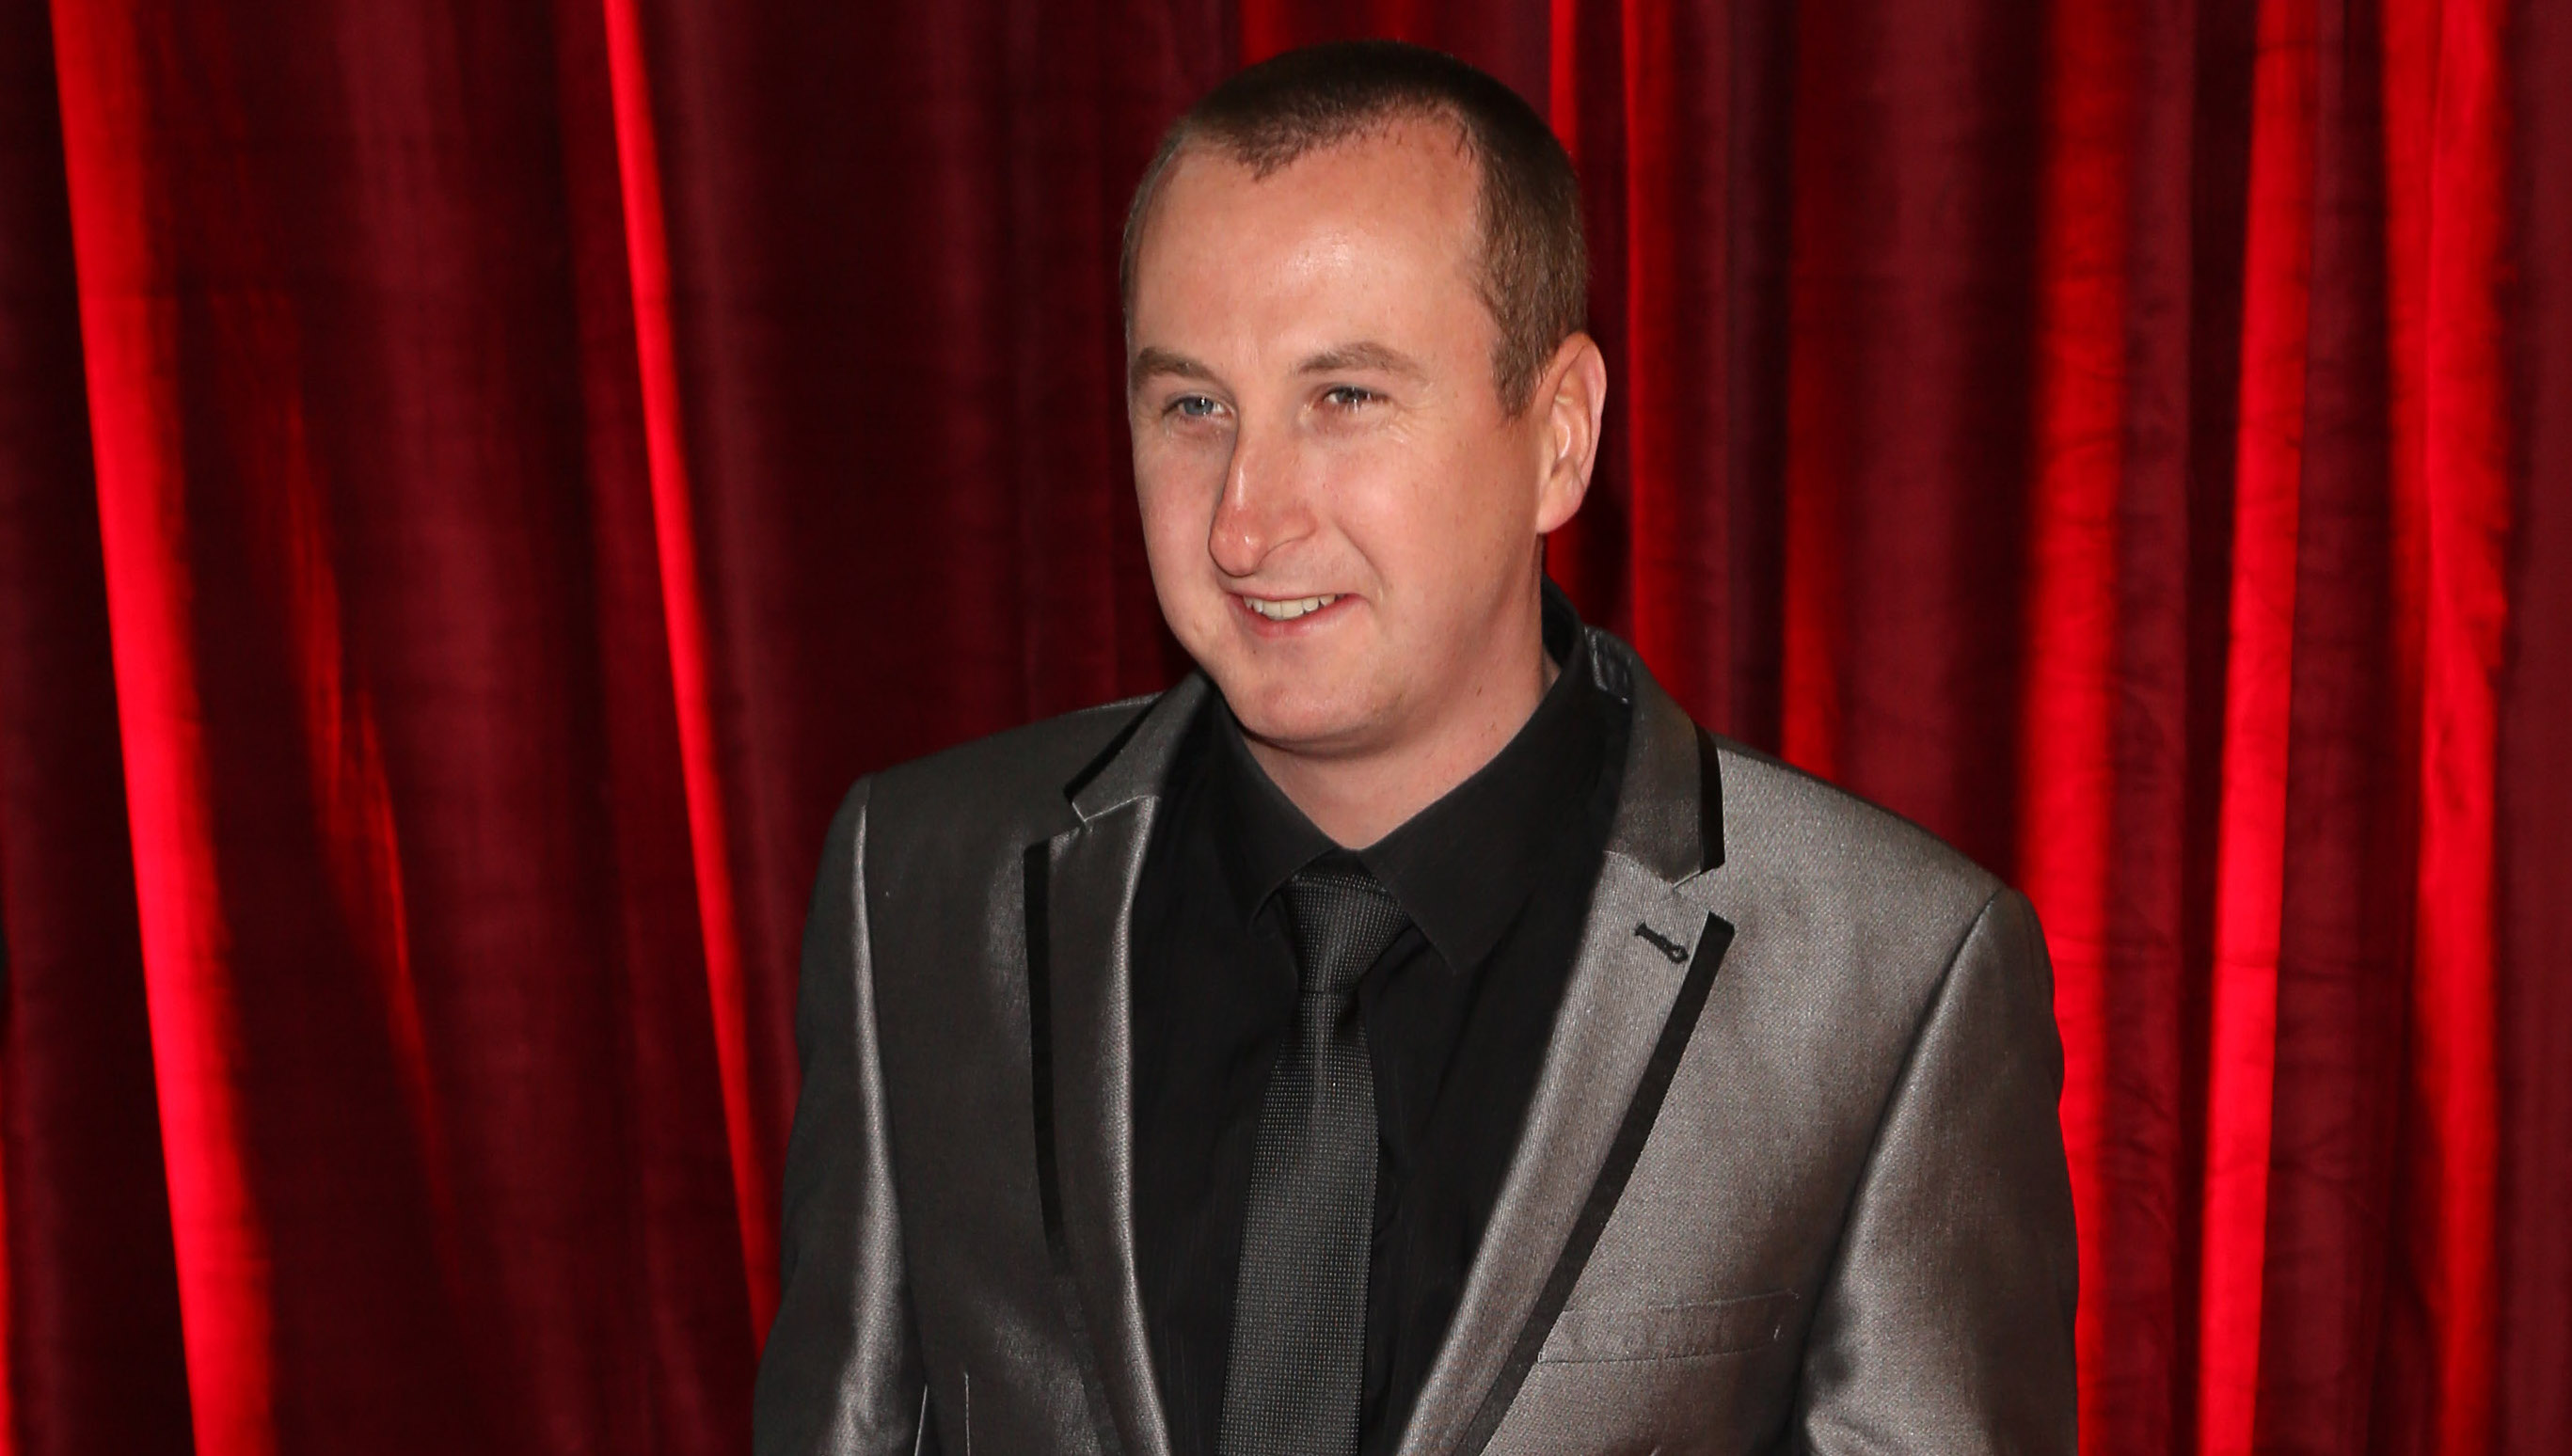 I'm A Celebrity's Andy Whyment celebrates with Corrie pals at jungle-themed homecoming party